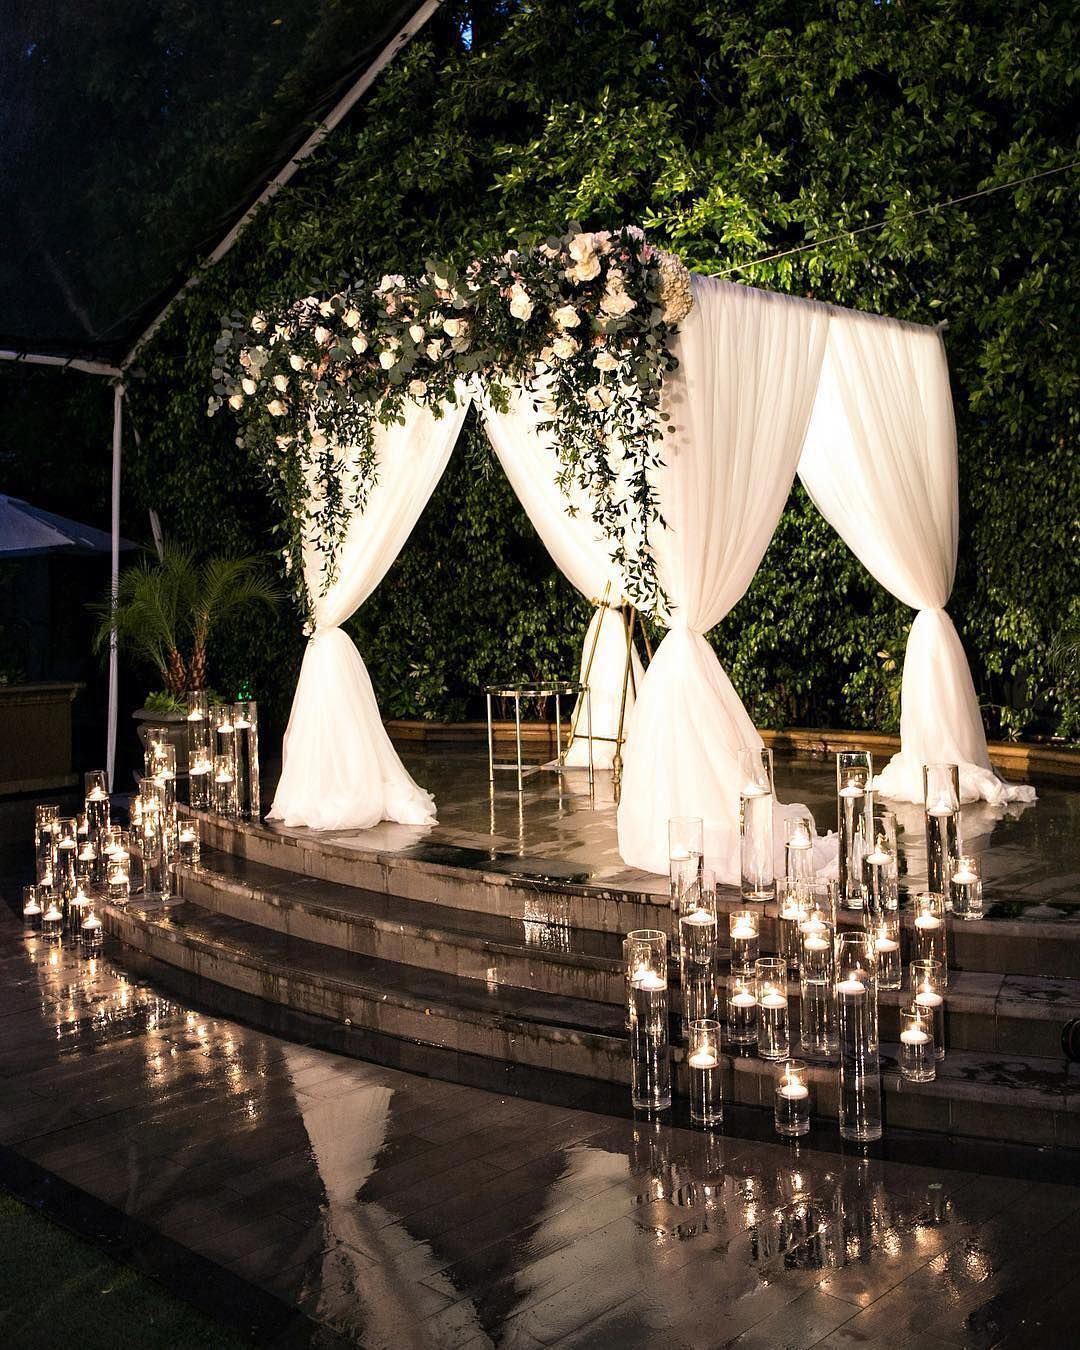 Weddings Onpoint On Instagram Love This Planning